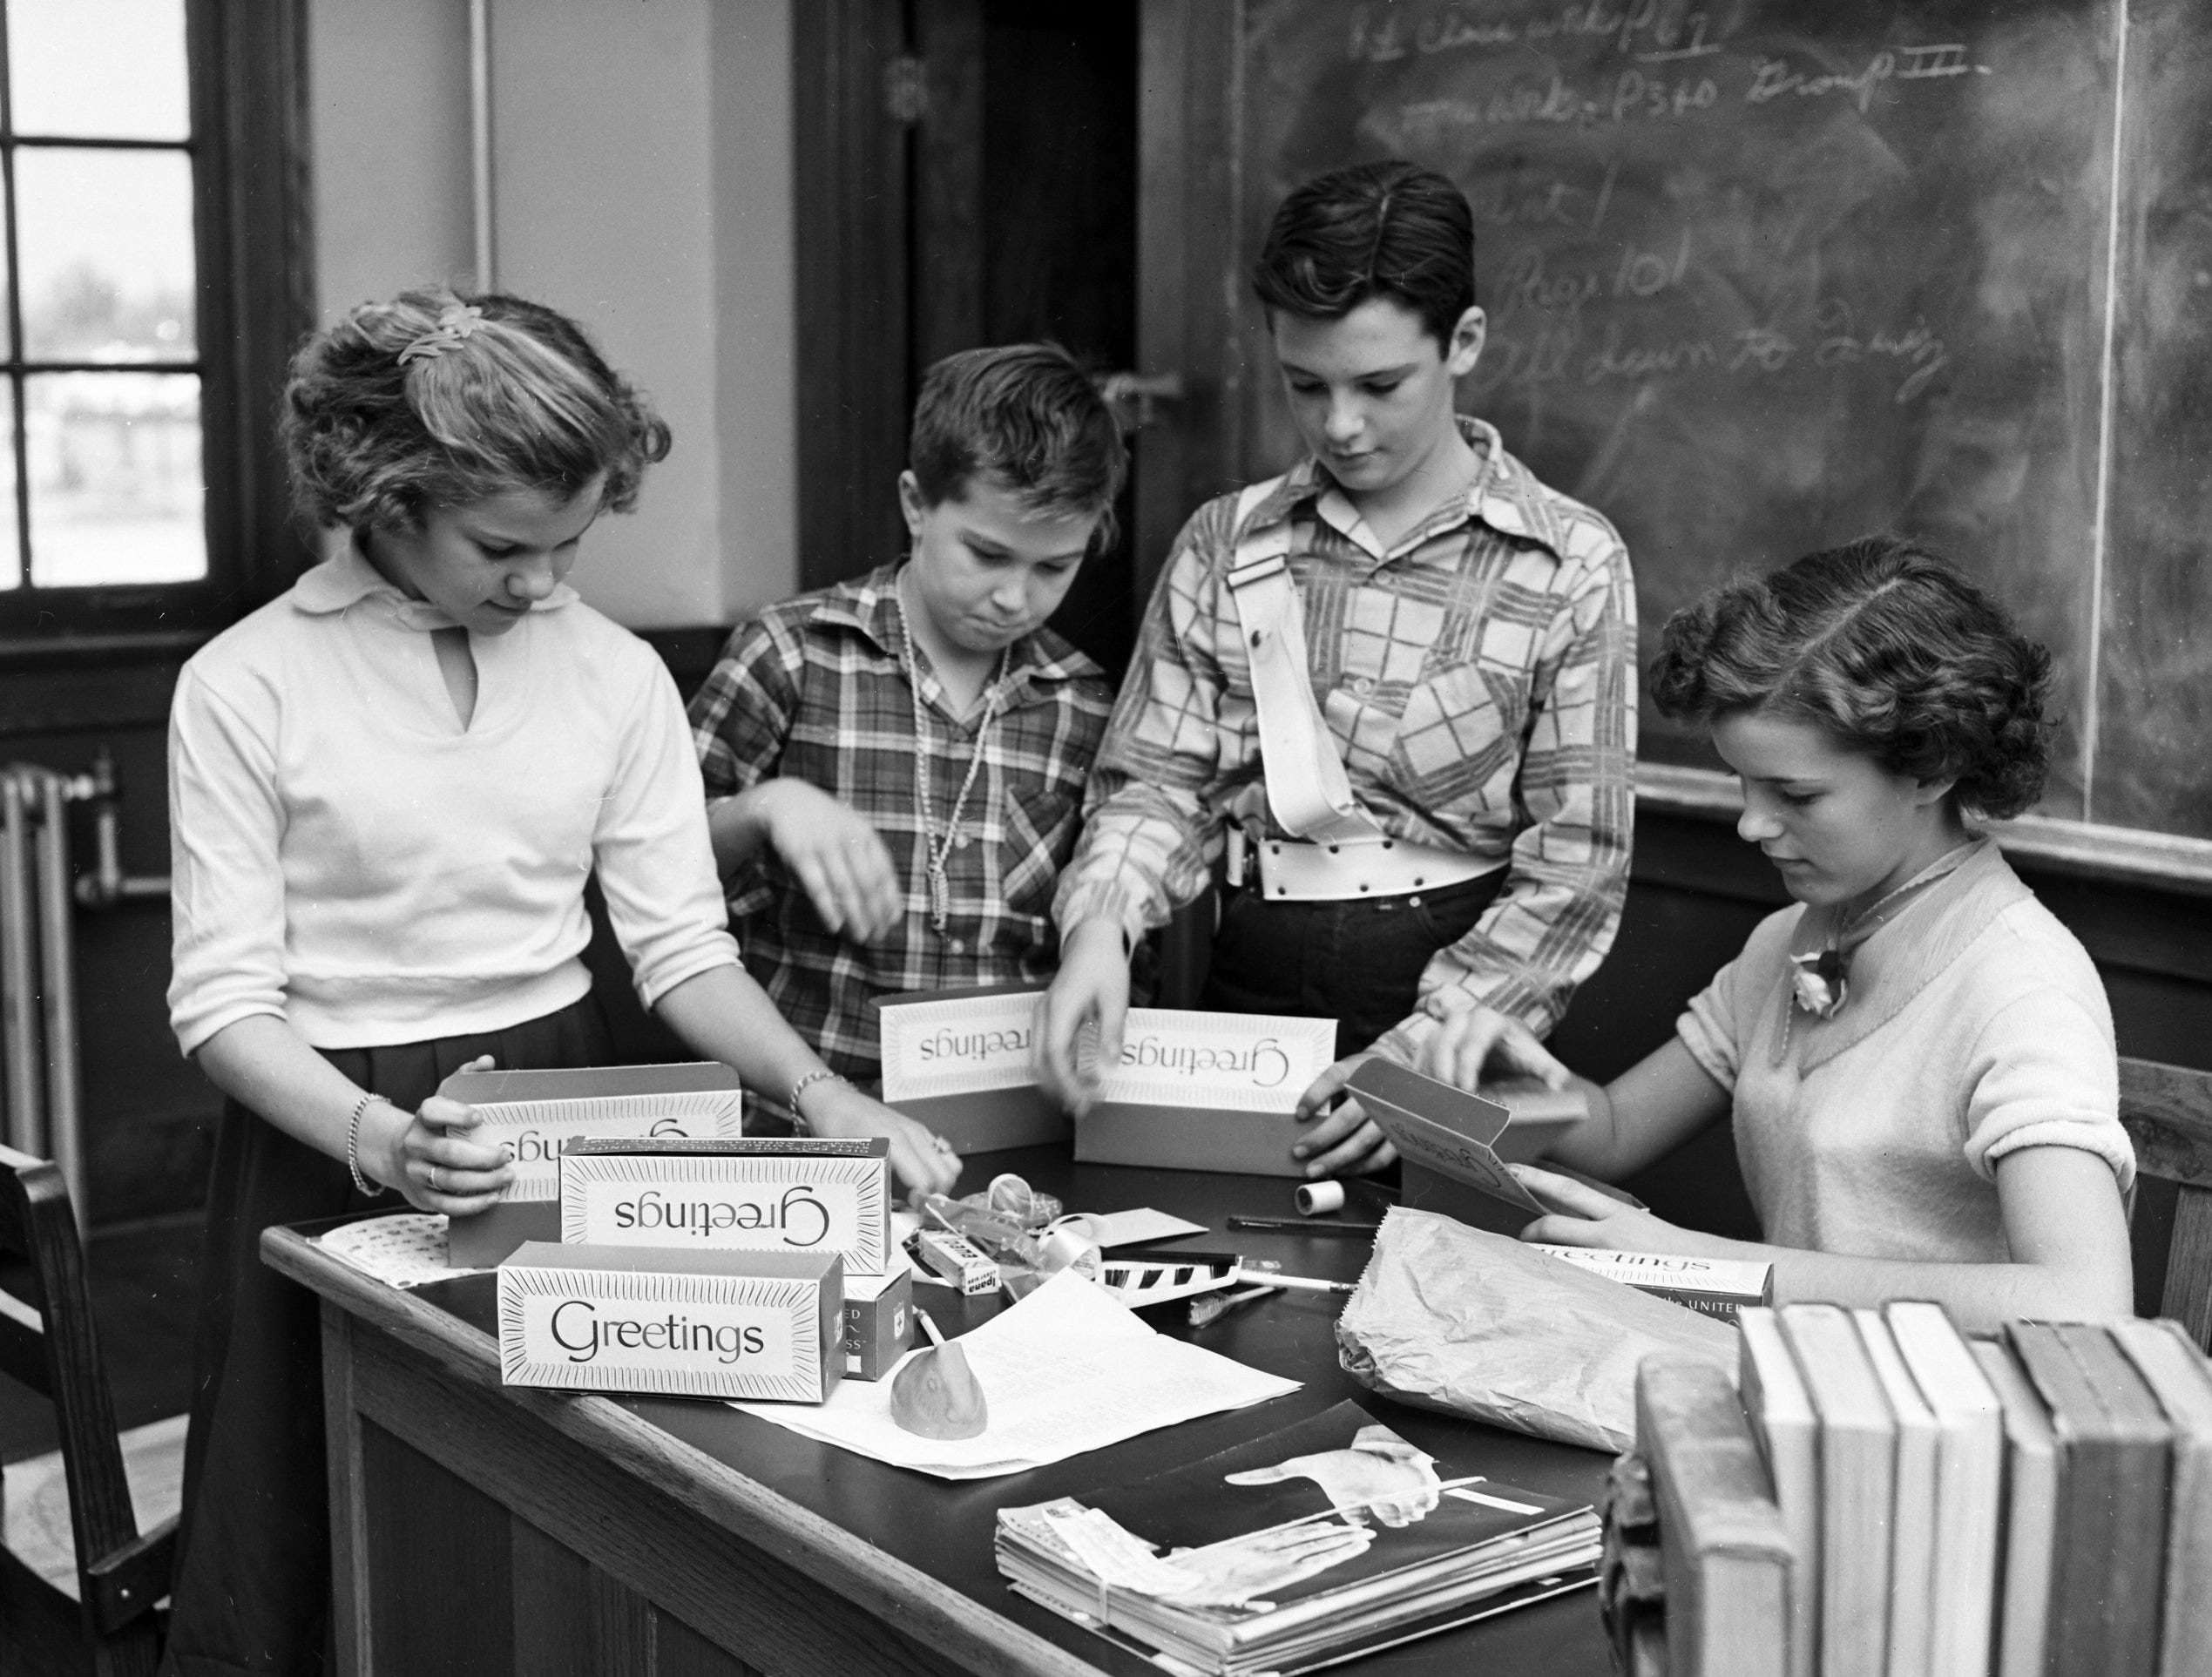 Boys and girls all over Memphis and the Mid-South are busy in November 1952, filling Junior Red Cross gift boxes which soon will be sent to needy students in distant lands.  Active in the gift box campaign at Treadwell are these four, who spent their afternoons packing the boxes with articles they'd bought.  Busy at work are (From Left) Loretta Lewter, 12, of 769 Freeman; Alna Bonds, 11, of 3697 Vernon; Lewis Gross, 13, of 1053 Gordon and Margaret Barrow, 13 of 3458 Bowen.